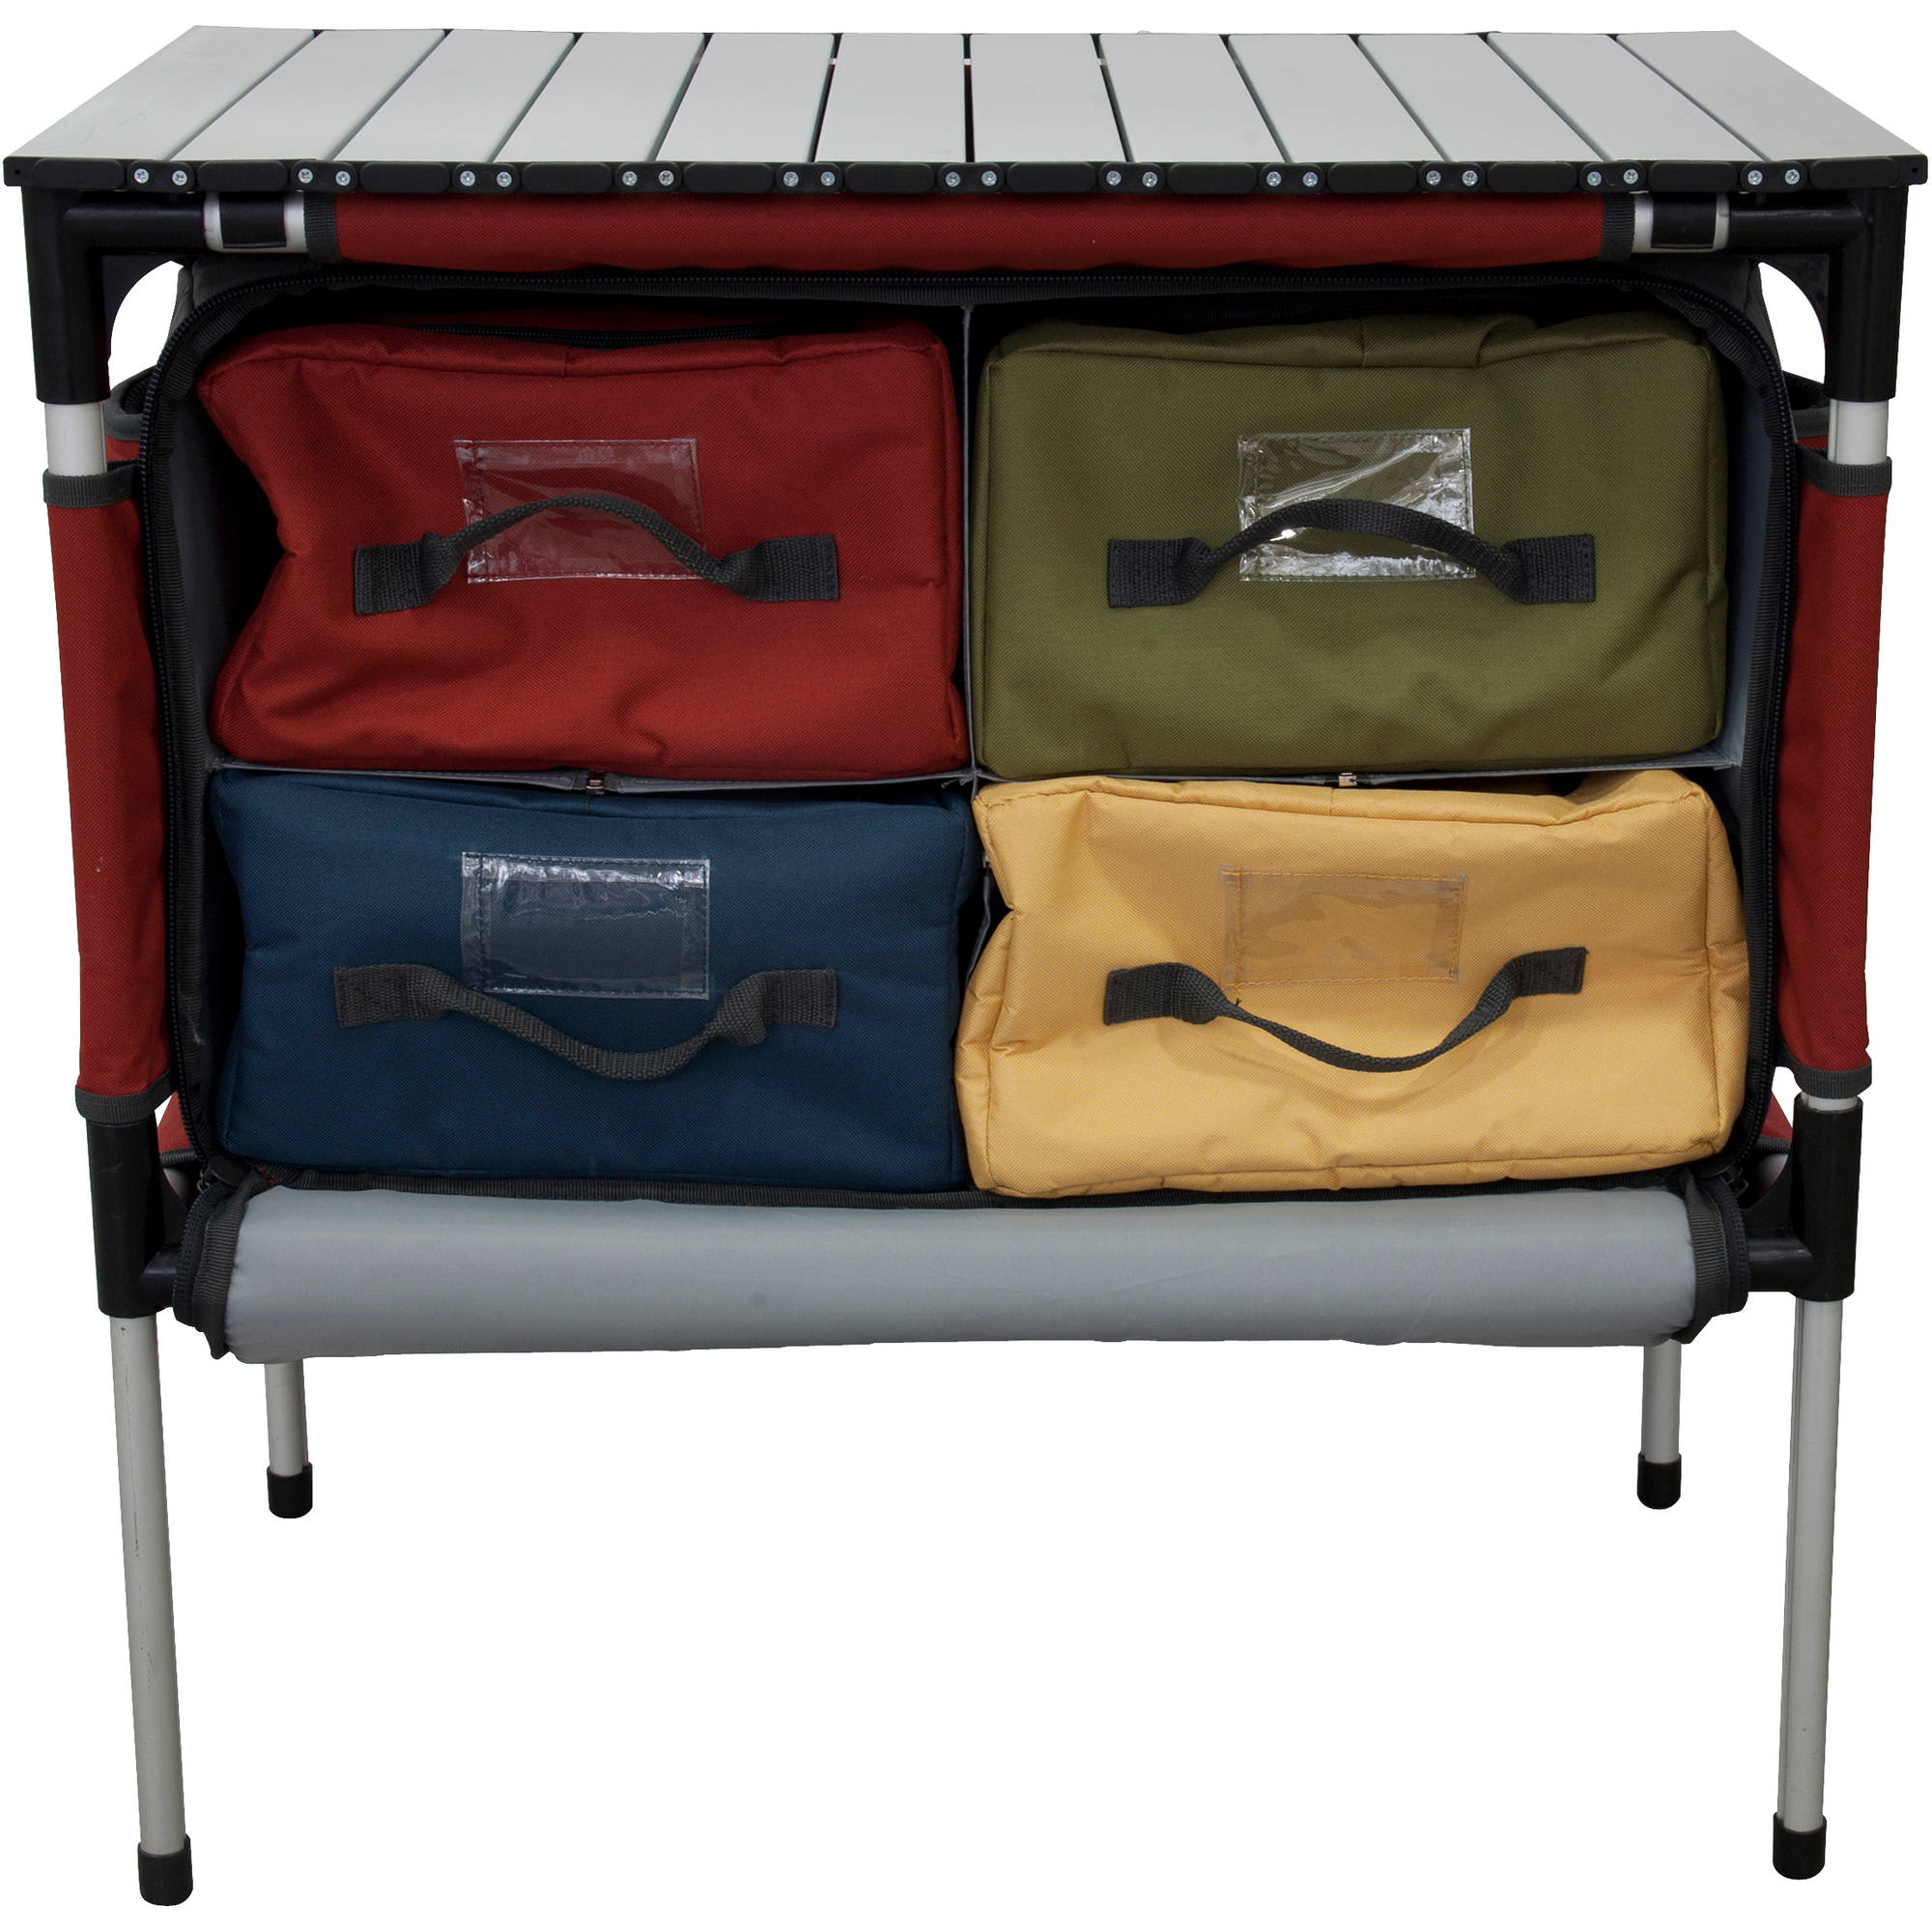 Camp Chef MSTAB Sherpa Outdoor Camping Table & Organizer